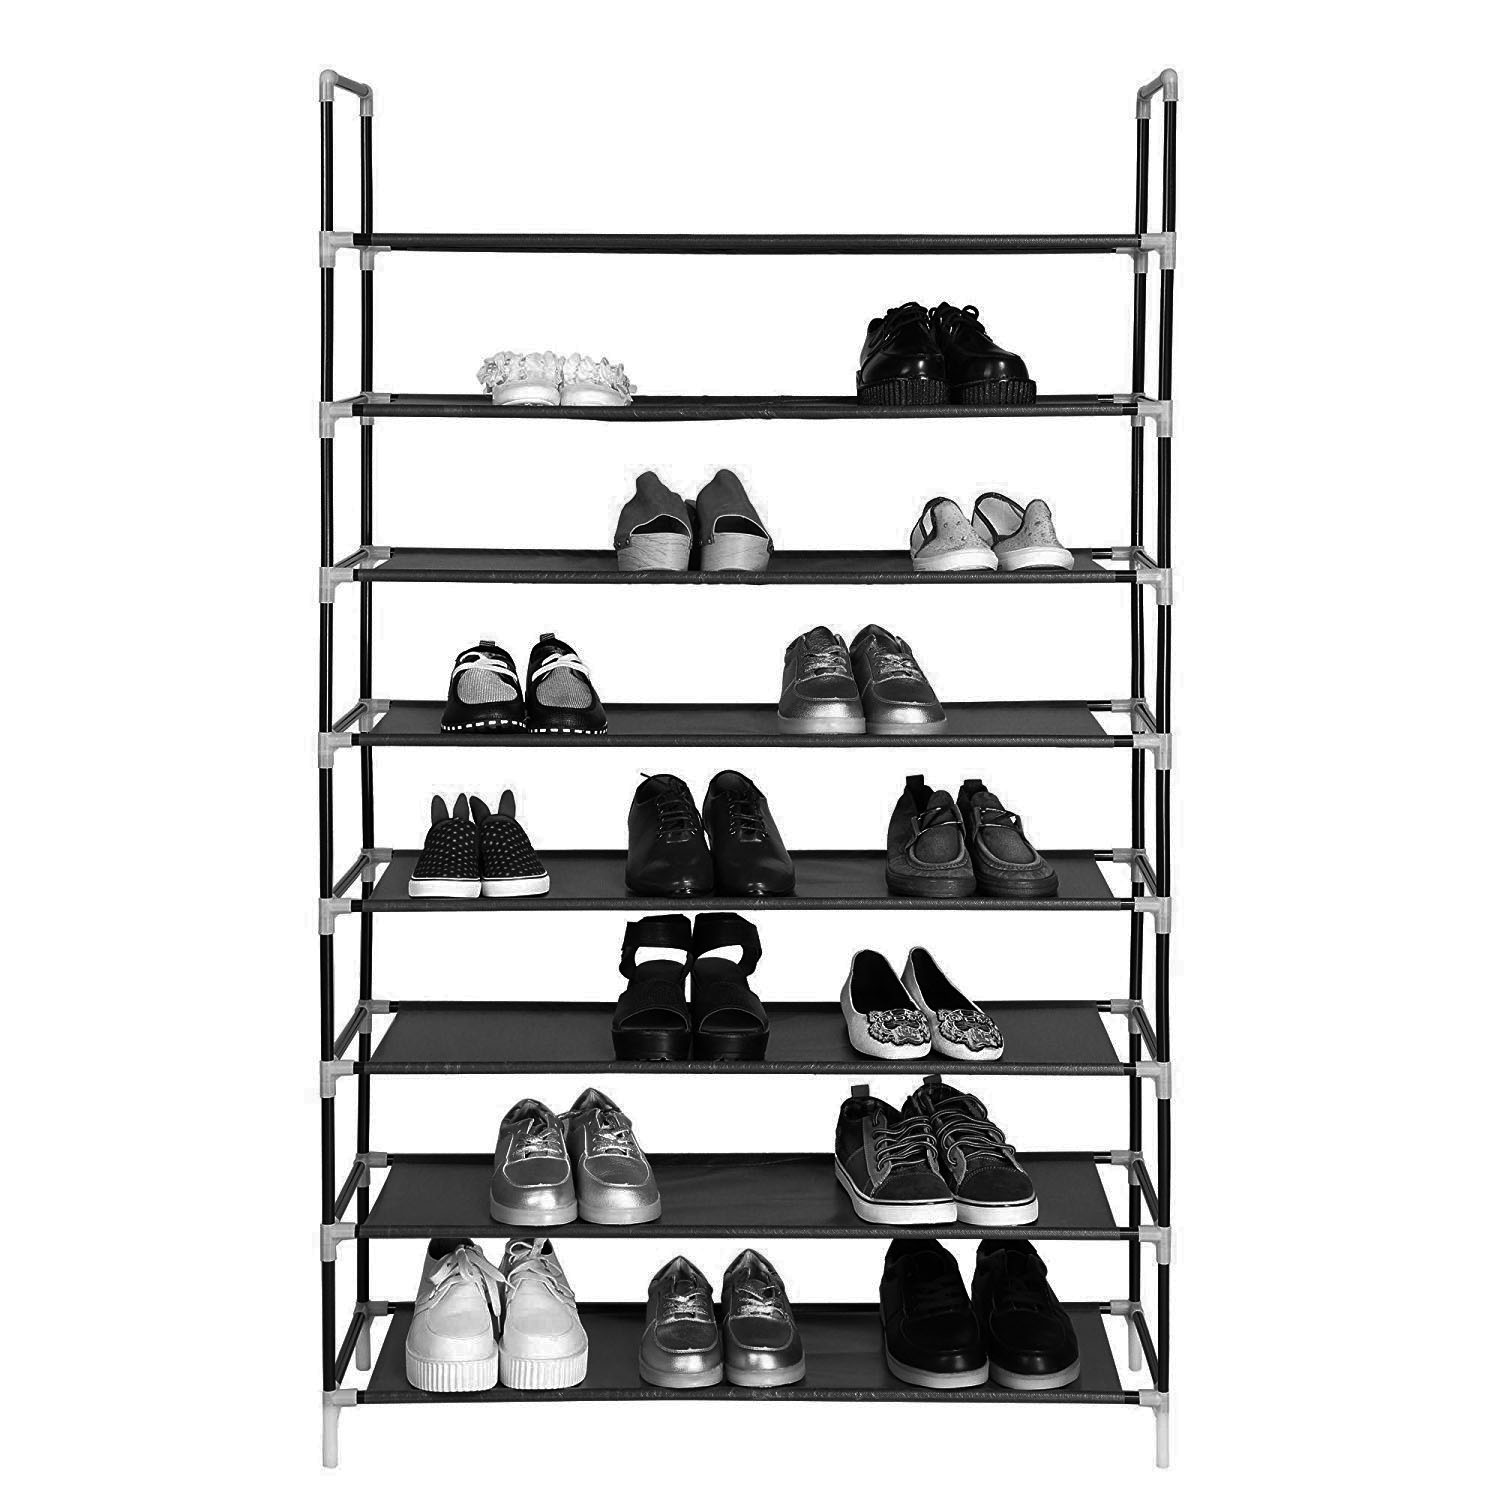 shoe rack for garage 8 tier shoe organizer for closets heavy duty shoe storage rack with metal tubes non woven fabric shoe shelf for entryway foyer